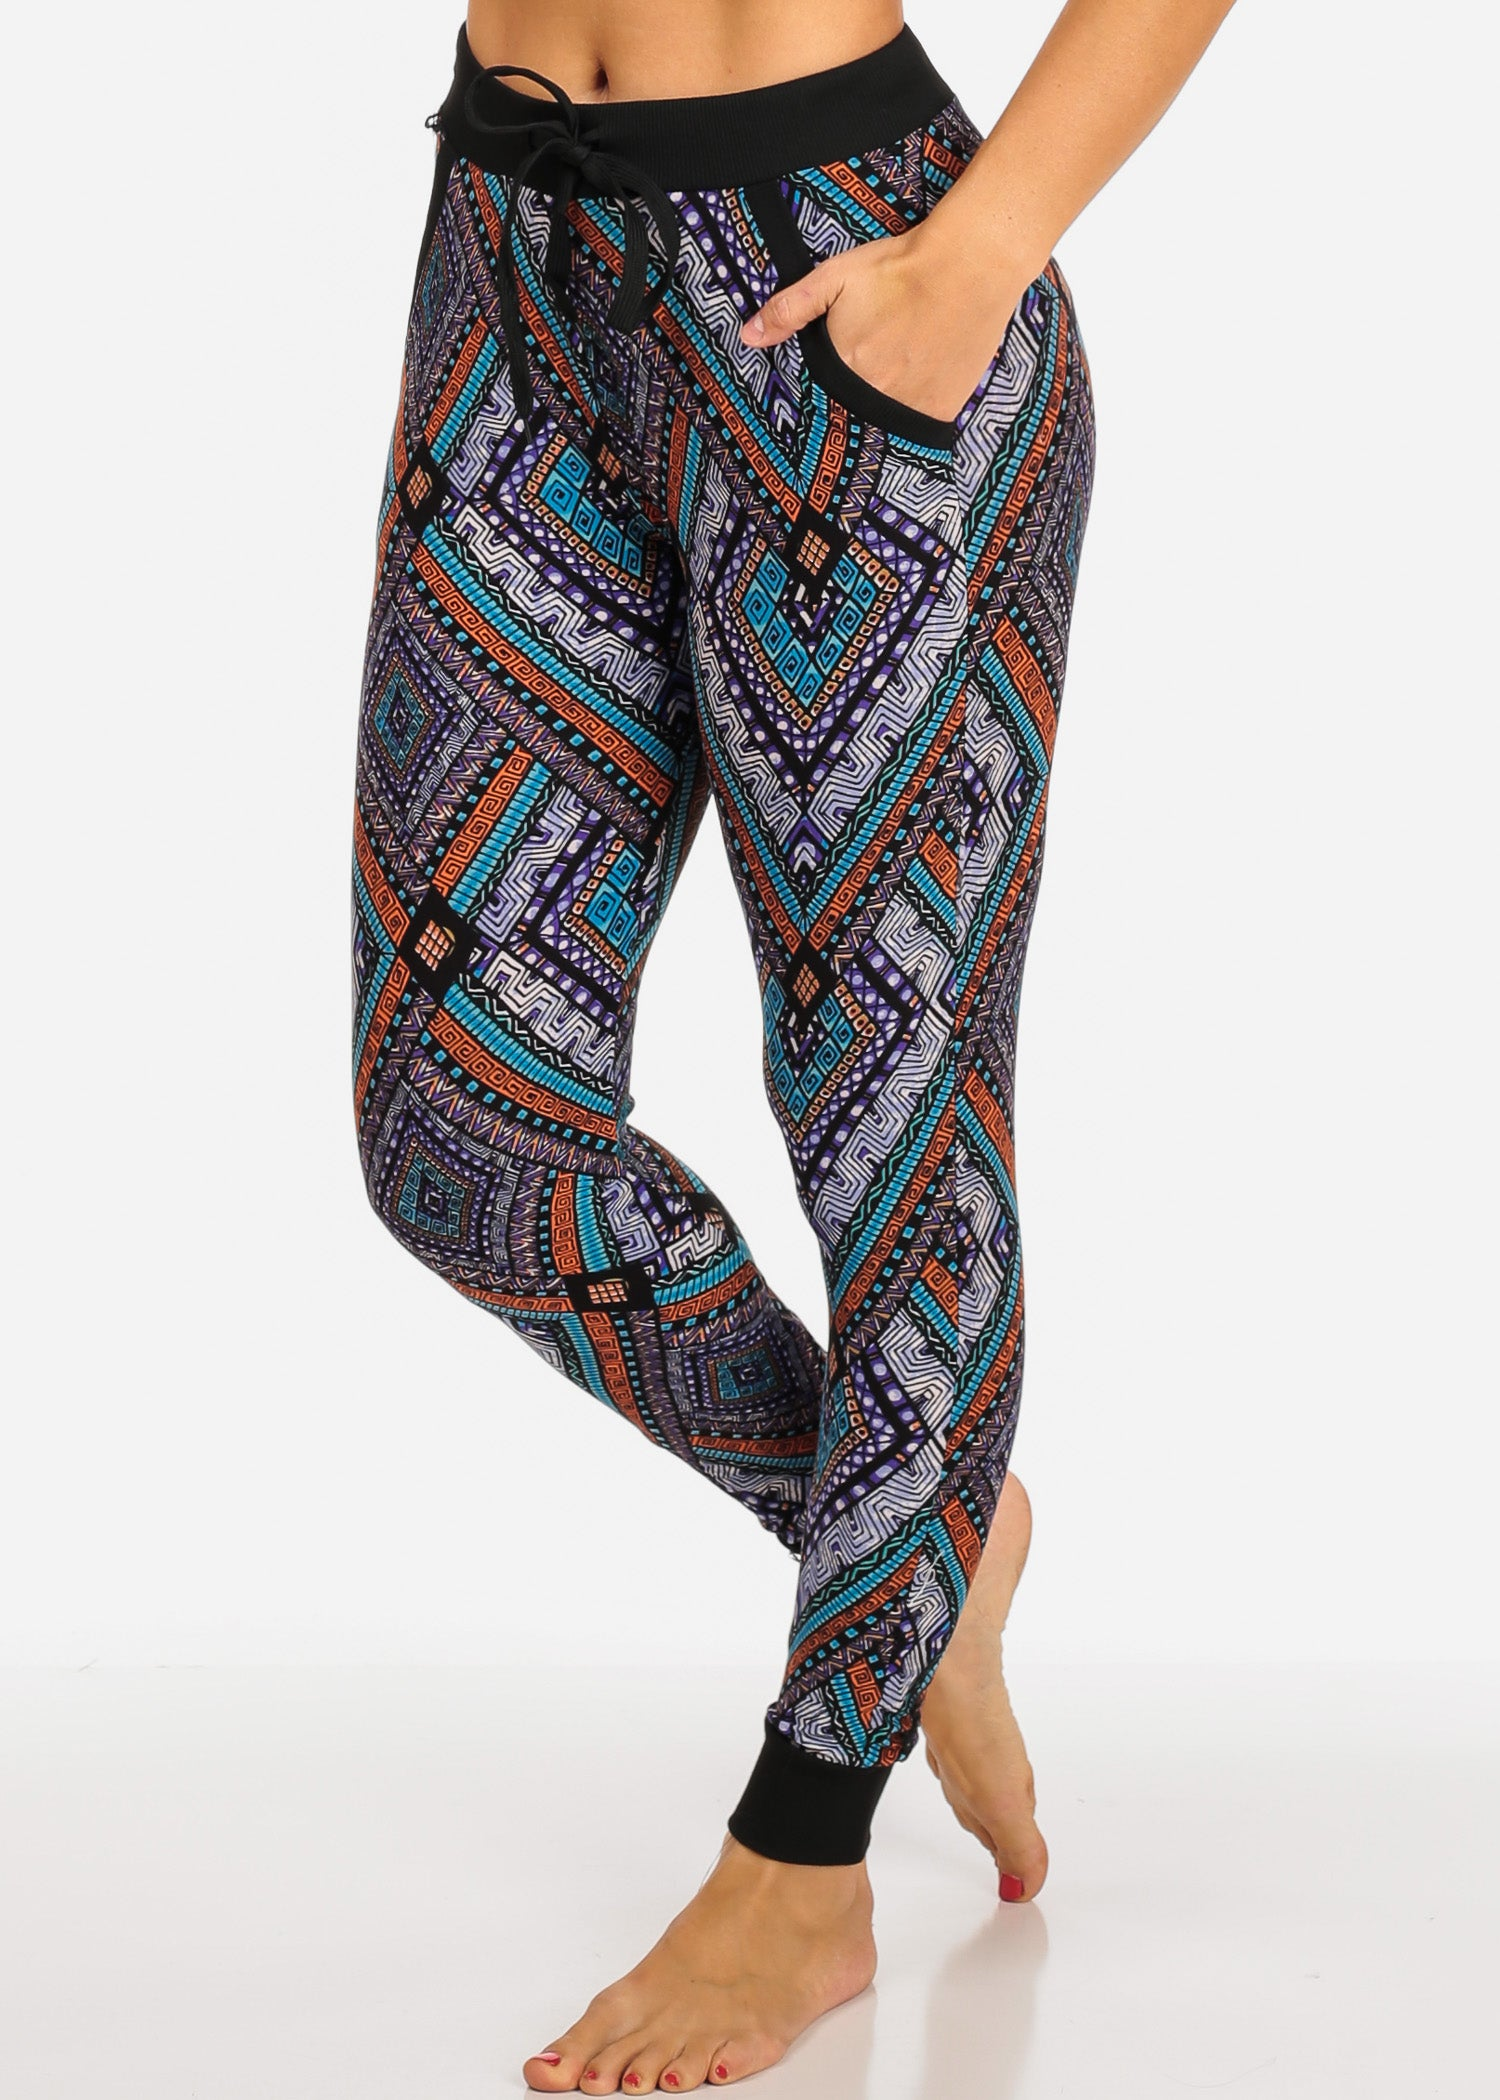 s Multicolor Pockets Side Waist Joggers Functional Print High Women cS5jL4qR3A